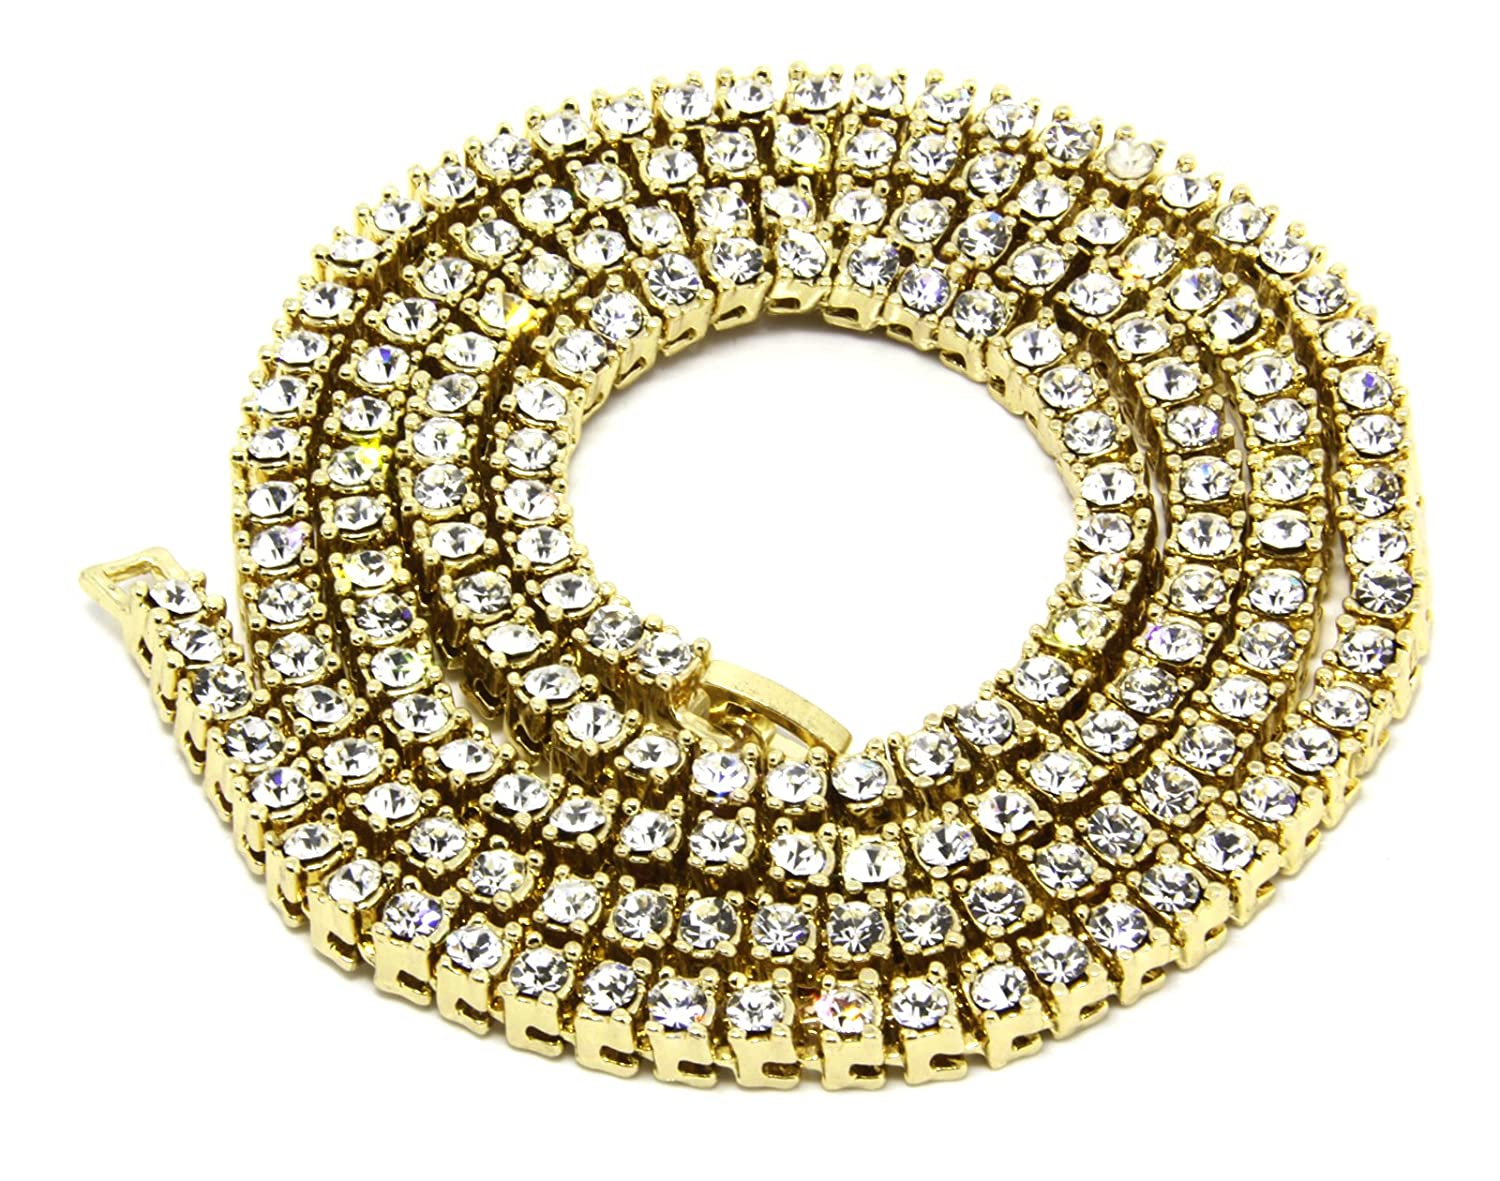 rope high products finish world c chain diamond jewelry yellow classic cm mm shine simulated necklace quality gold solid